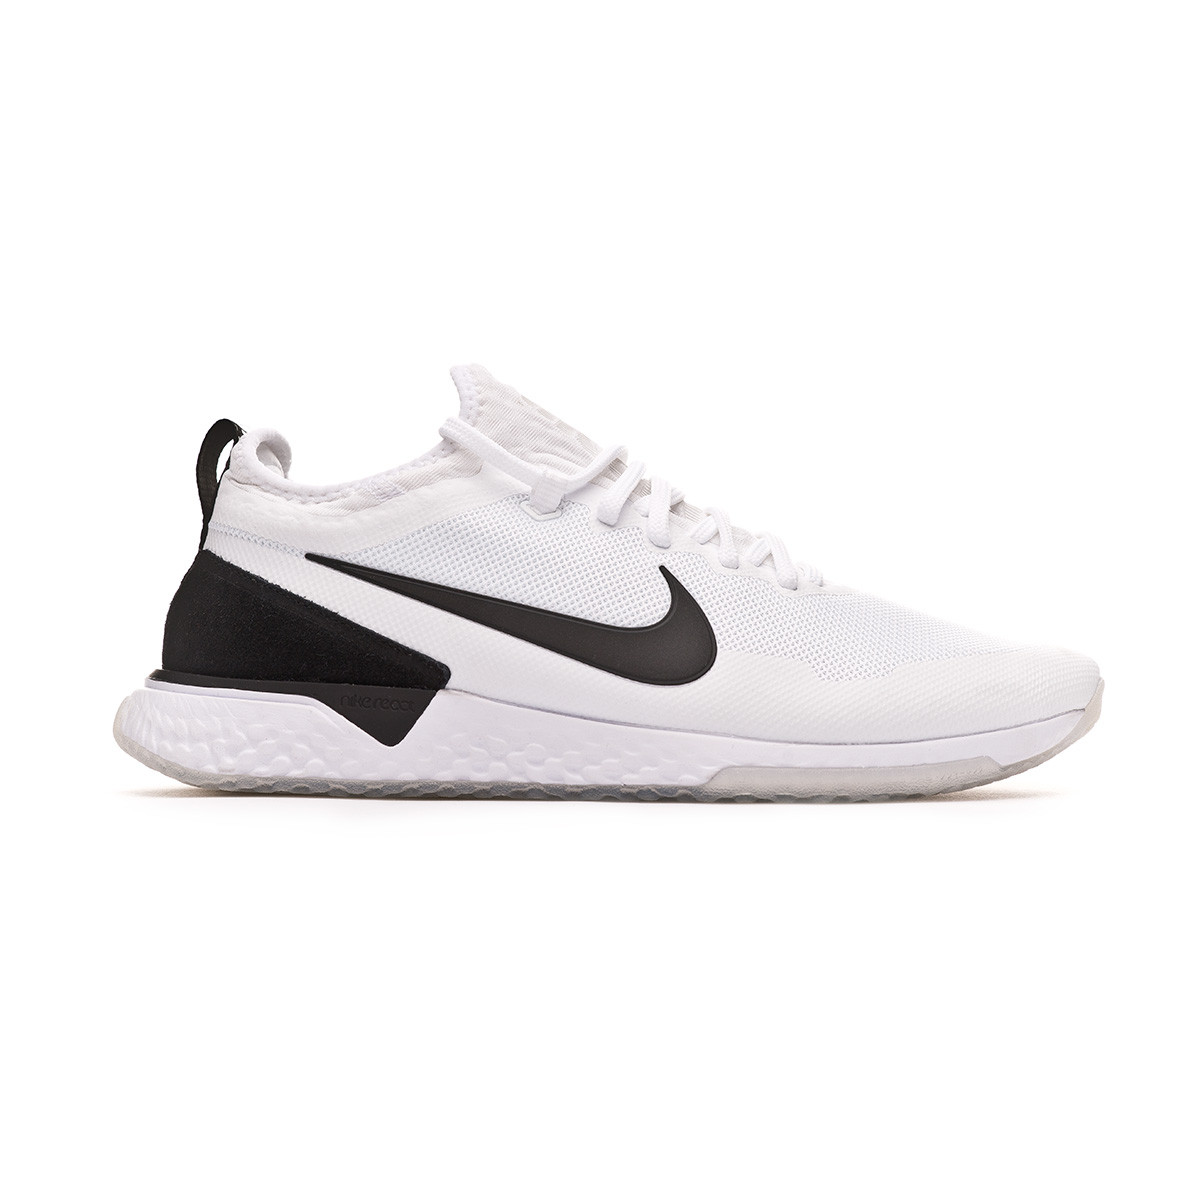 new style 0bc67 655ad Trainers Nike Nike F.C. White-Black - Football store Fútbol Emotion